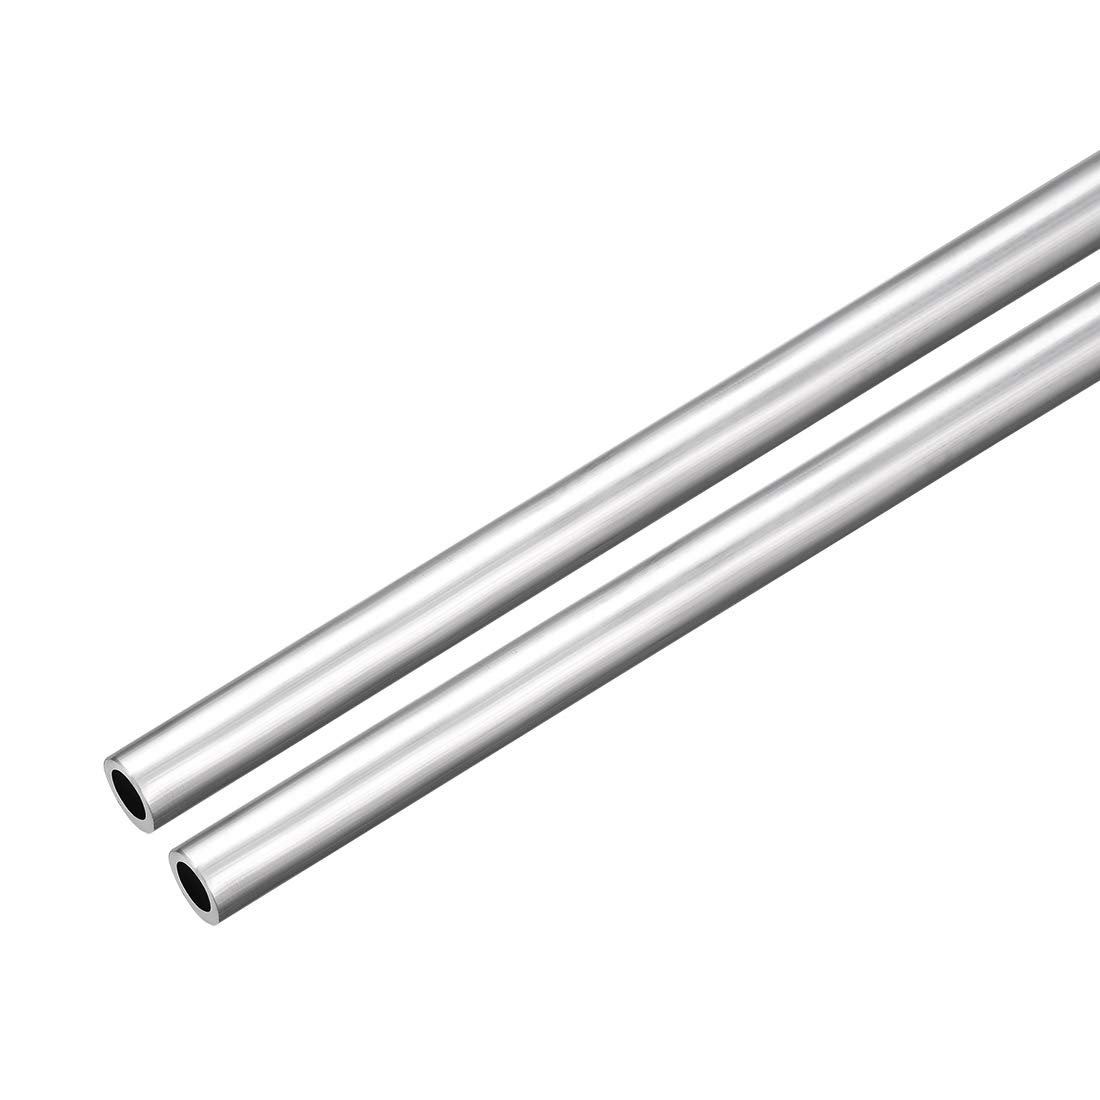 uxcell 2Pcs 6063 Seamless Aluminum Round Straight Tubing Tube 1 Feet Length 0.195 Inches ID 0.273 Inches OD